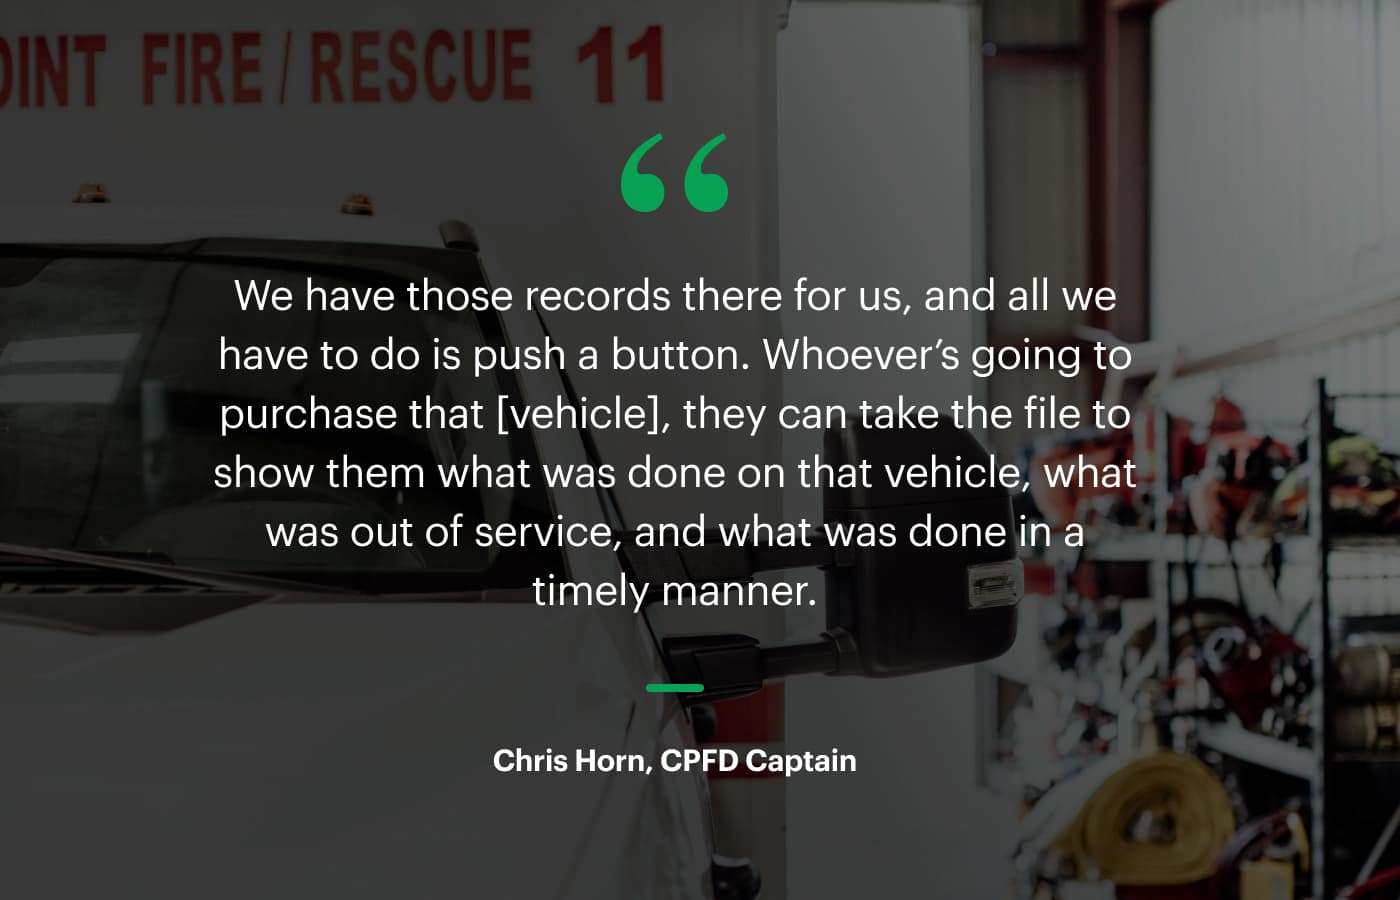 """""""We have those records there for us, and all we have to do is push a button. Whoever's going to purchase that [vehicle], they can take the file to show them what was done on that vehicle, what was out of service, and what was done in a timely manner."""" – Chris Horn, CPFD Captain"""